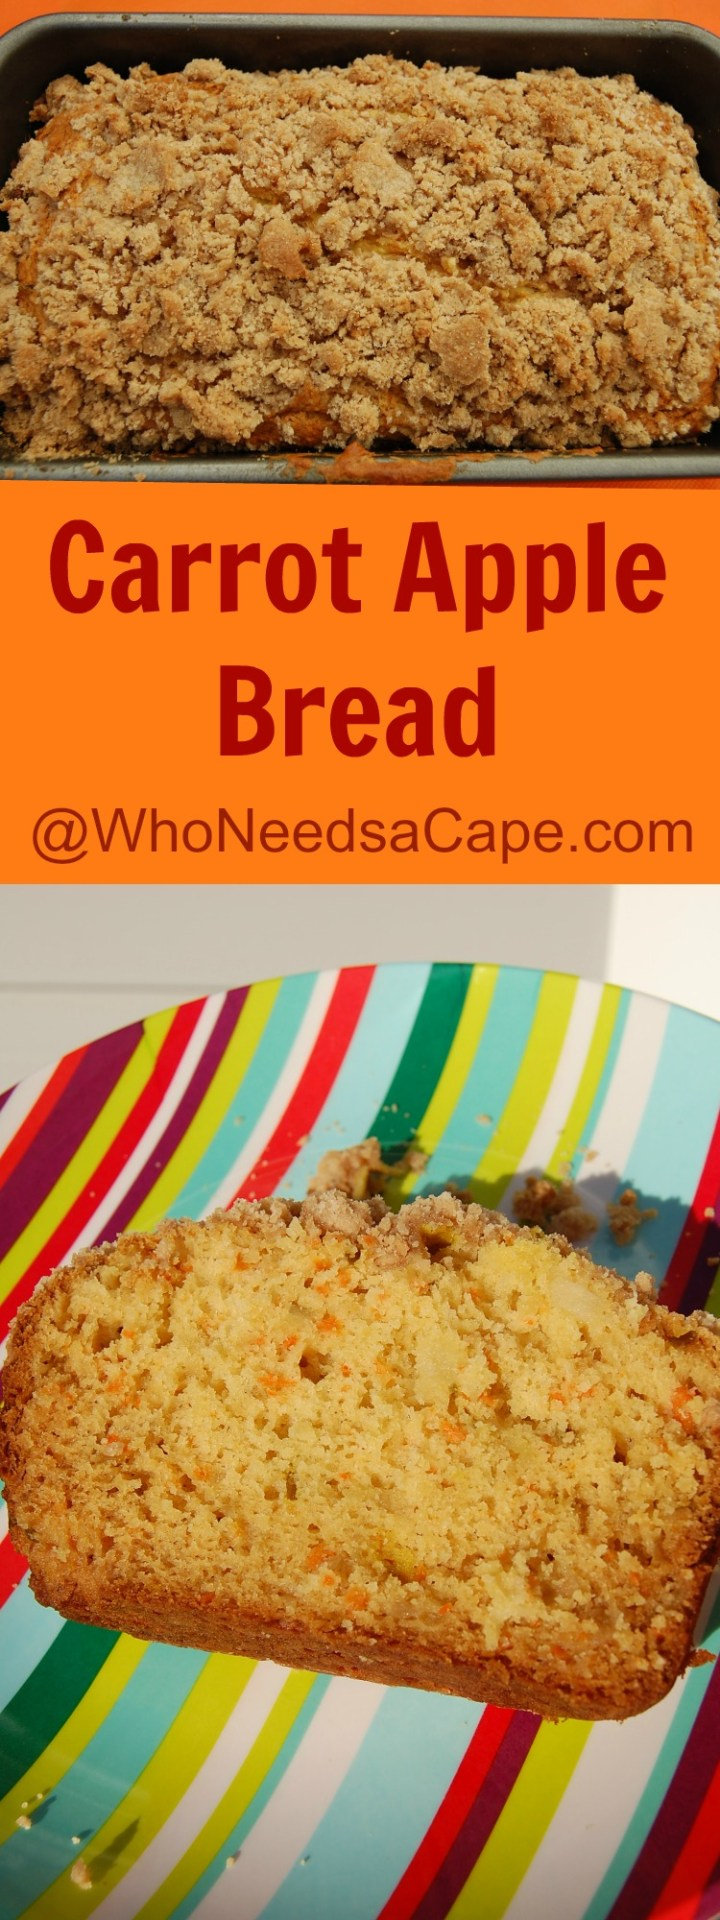 Carrot Apple Bread 4